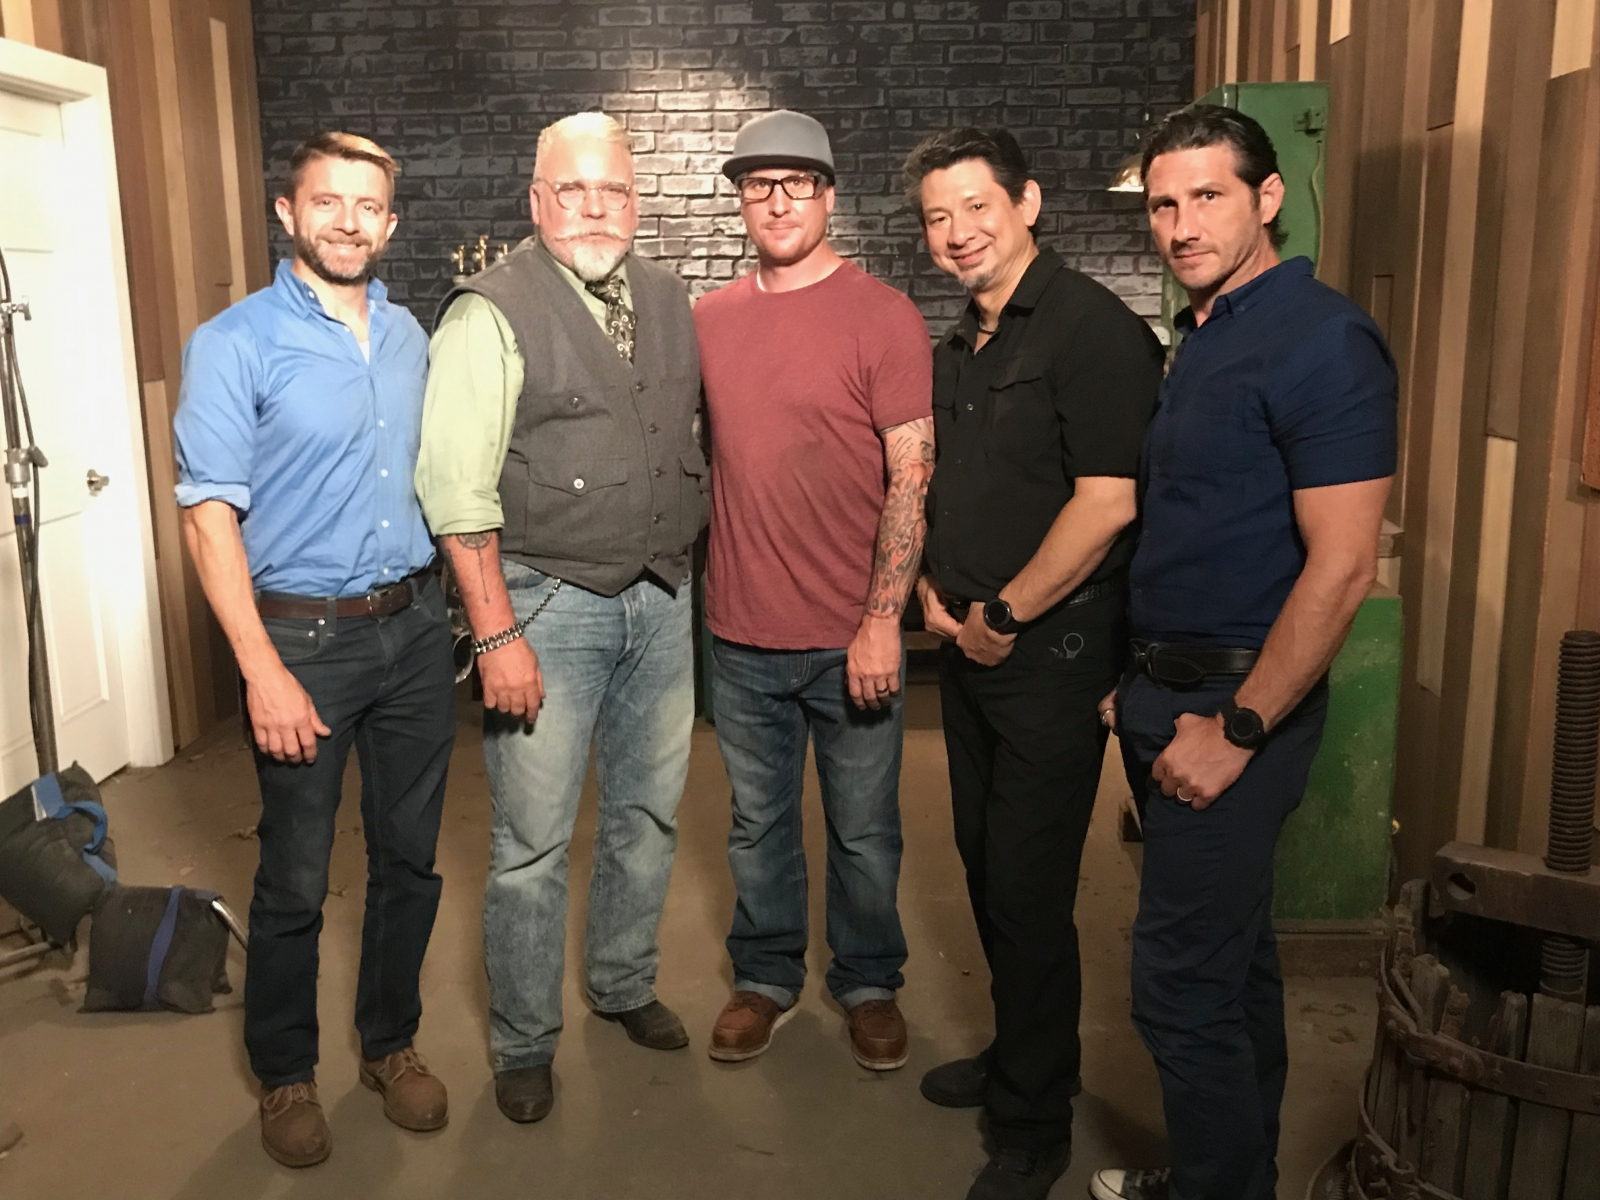 Jason Tiensvold (center) stands with the judges of Forged In Fire.